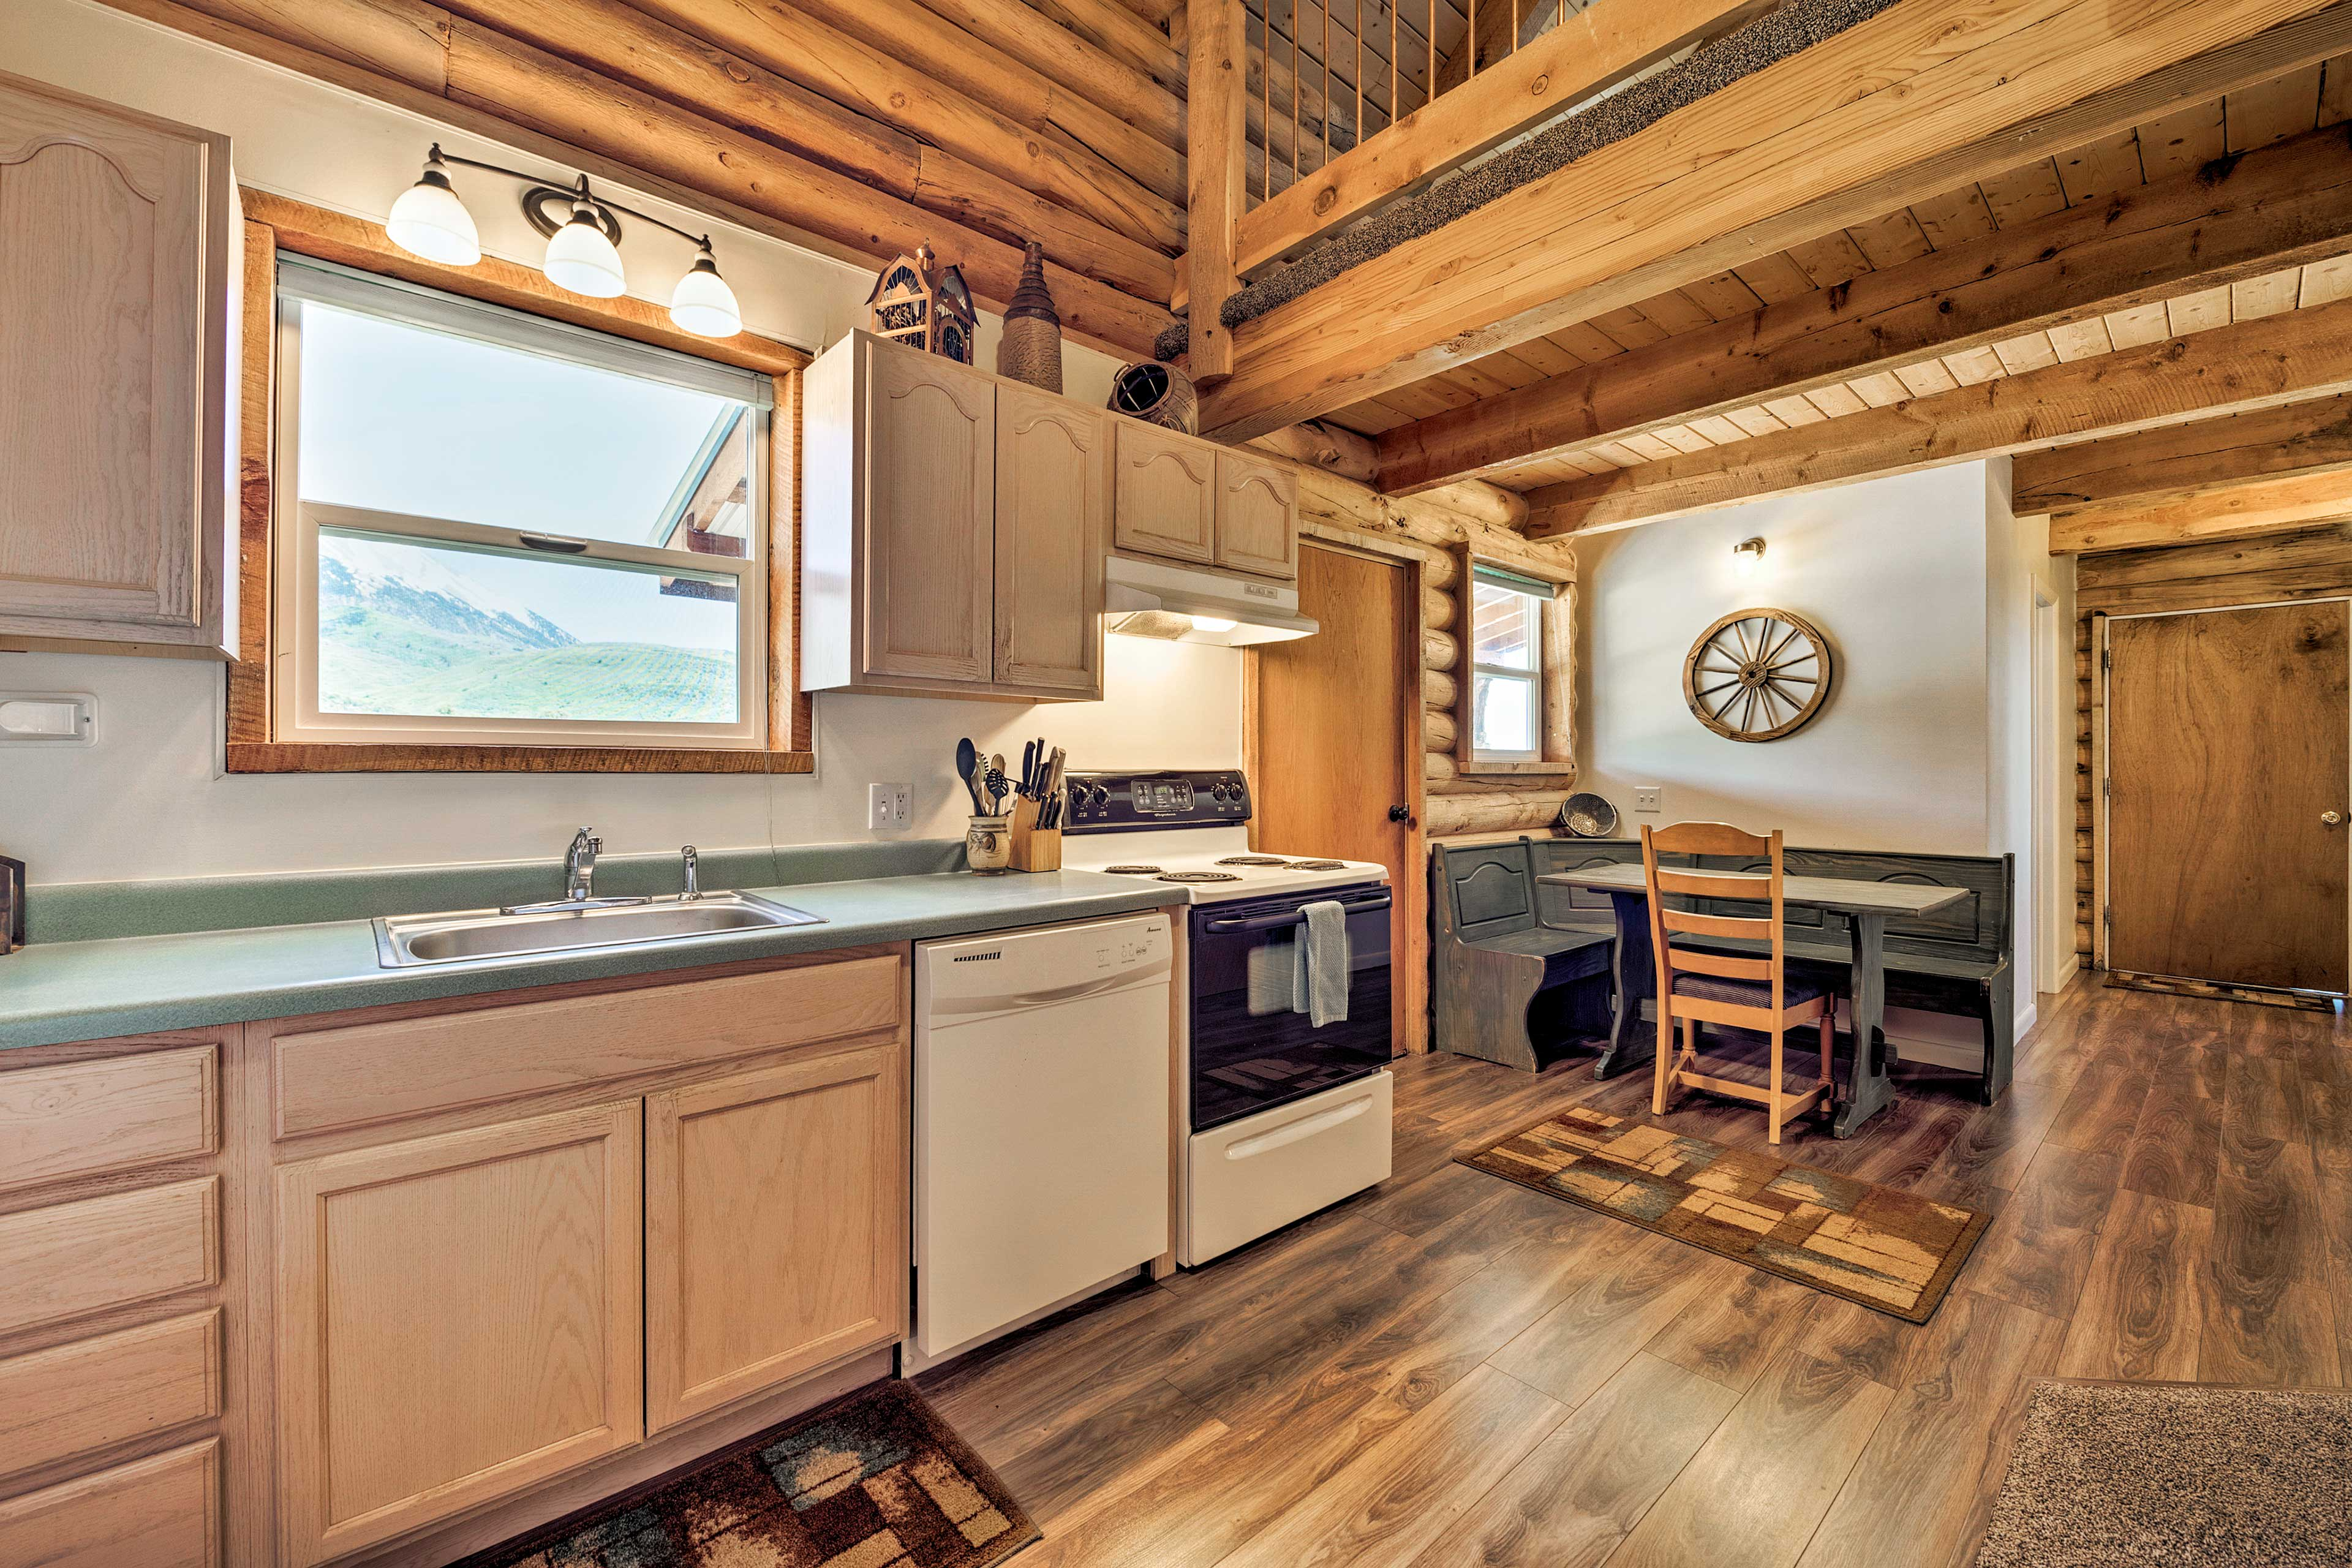 Open the kitchen window to let the fresh air breeze inside as you cook.